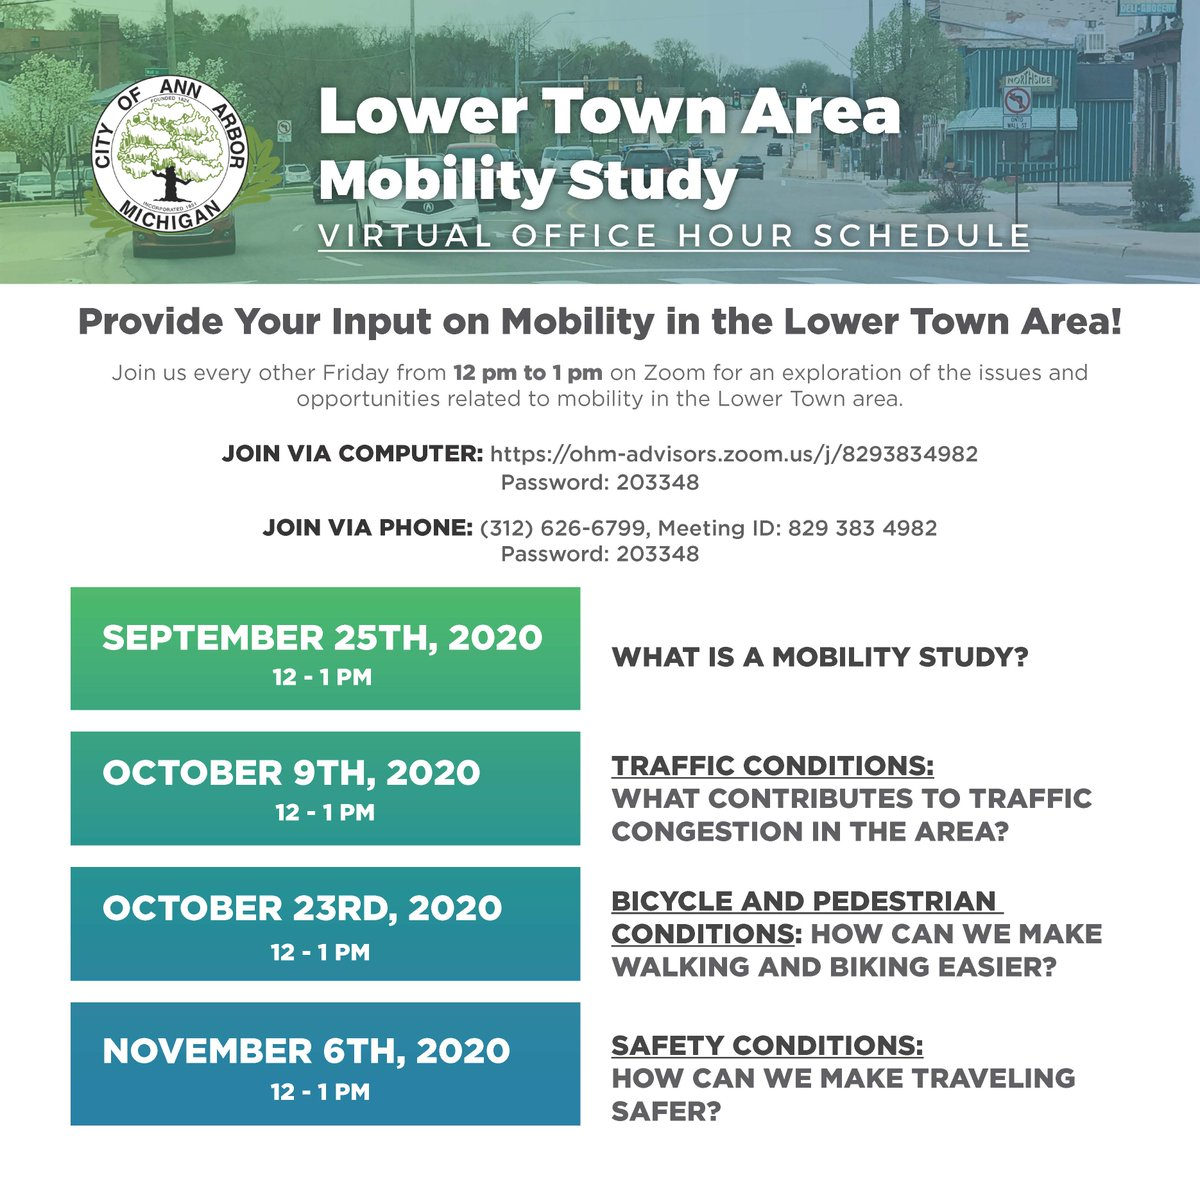 Join city staff later today for the first Lower Town Mobility Study virtual office hour from noon - 1pm. This week's topic: What is a mobility study?